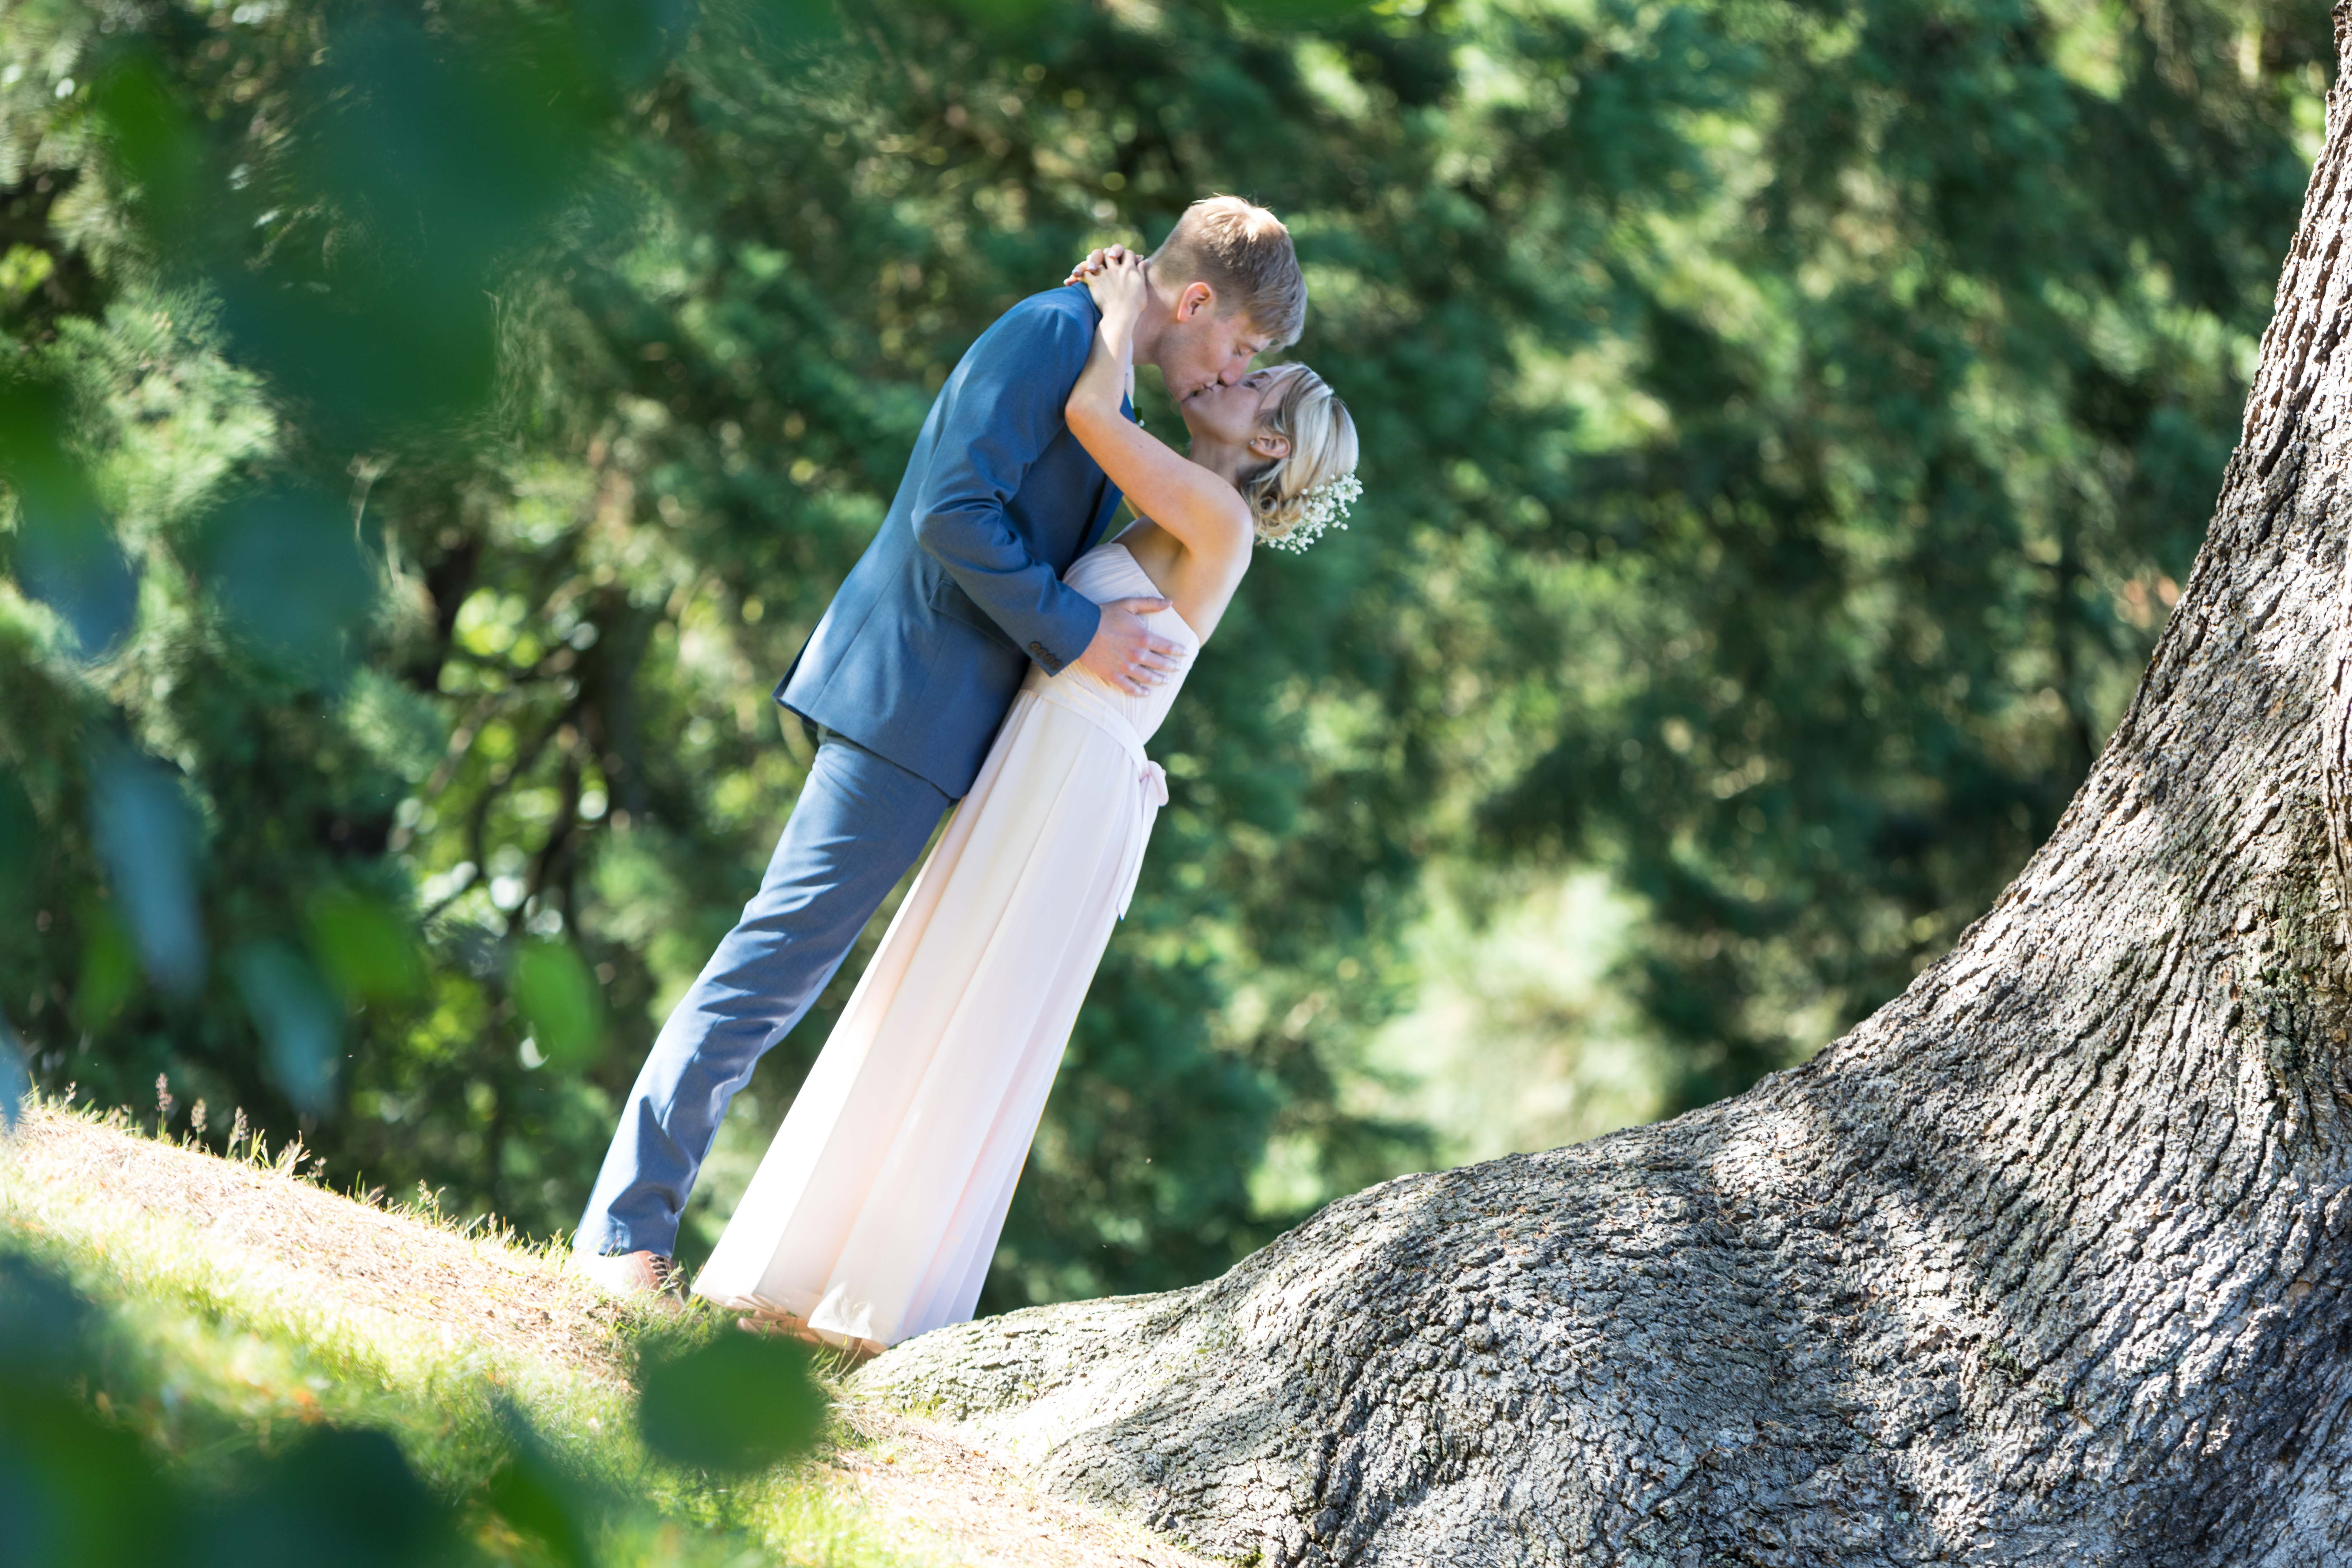 Wedding photography by Jack Cook